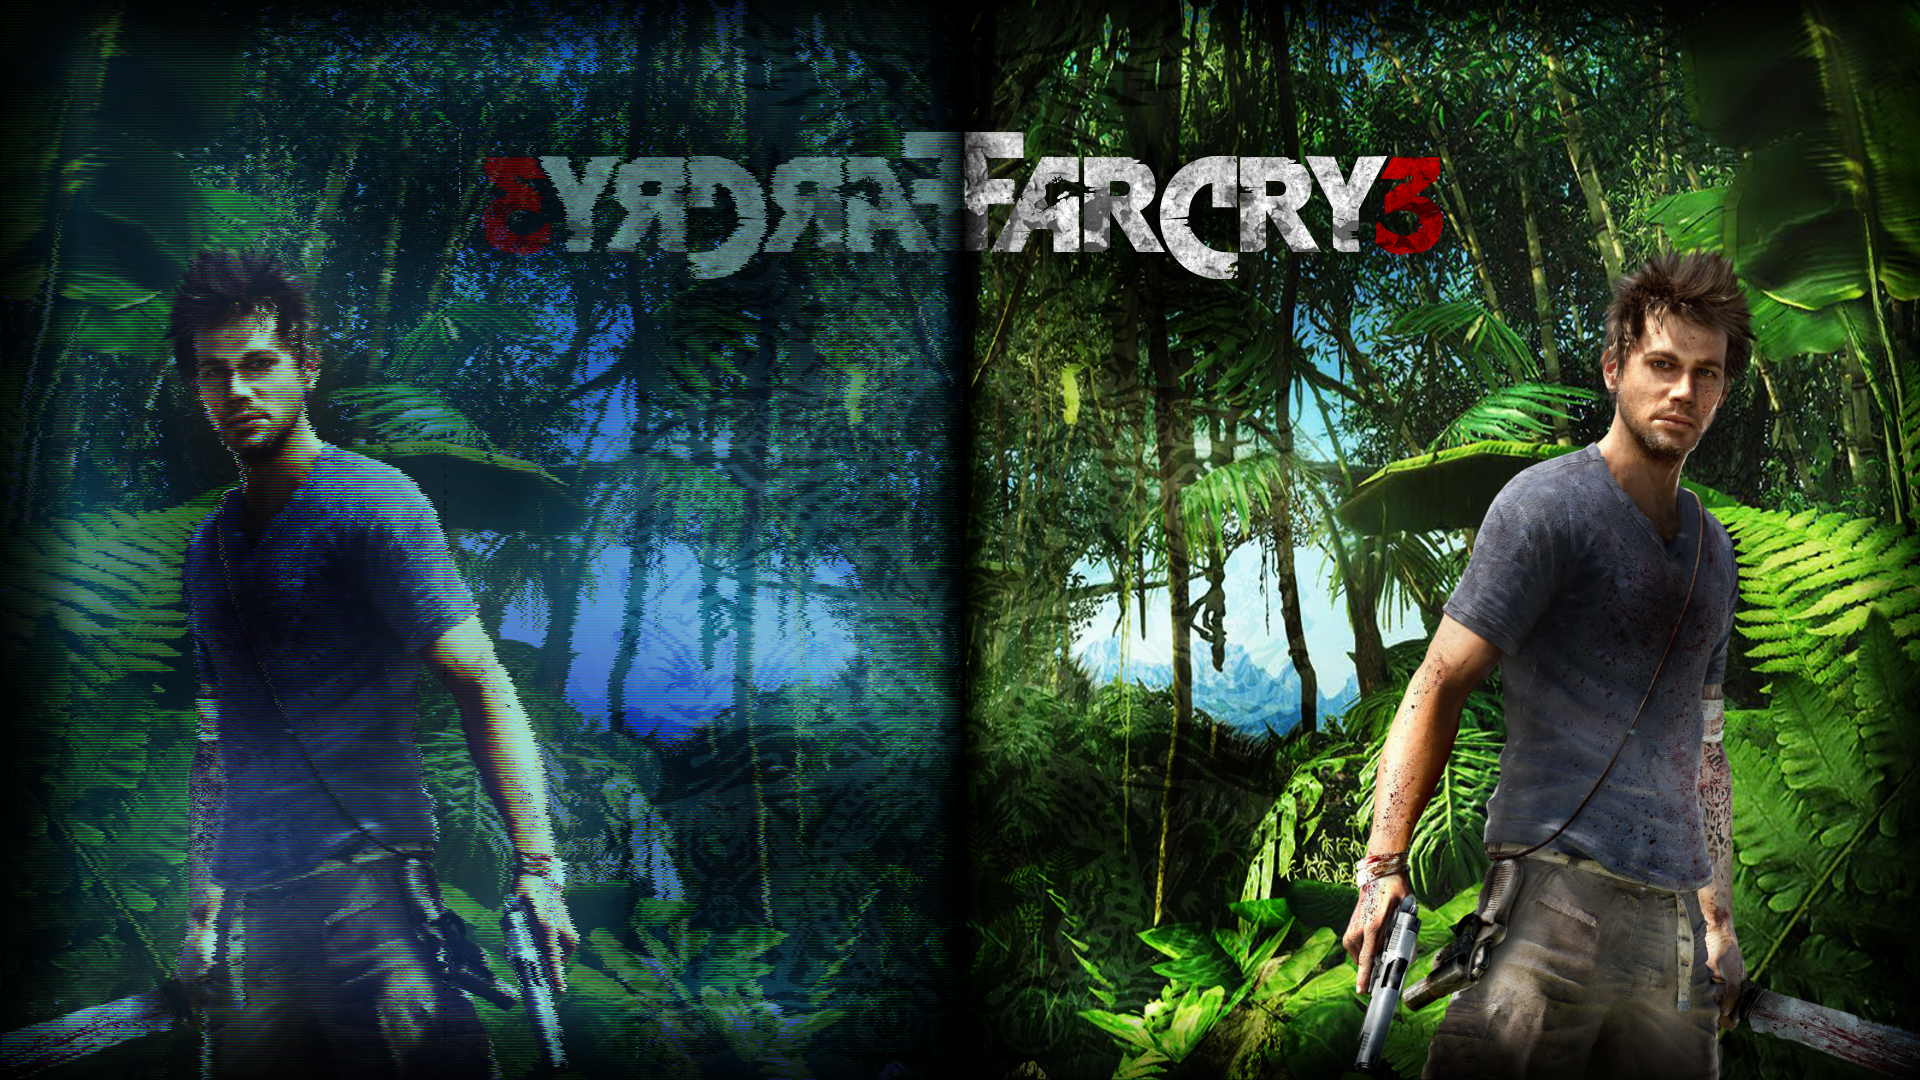 Far Cry 3 Wallpaper by PeneIopie 1920x1080